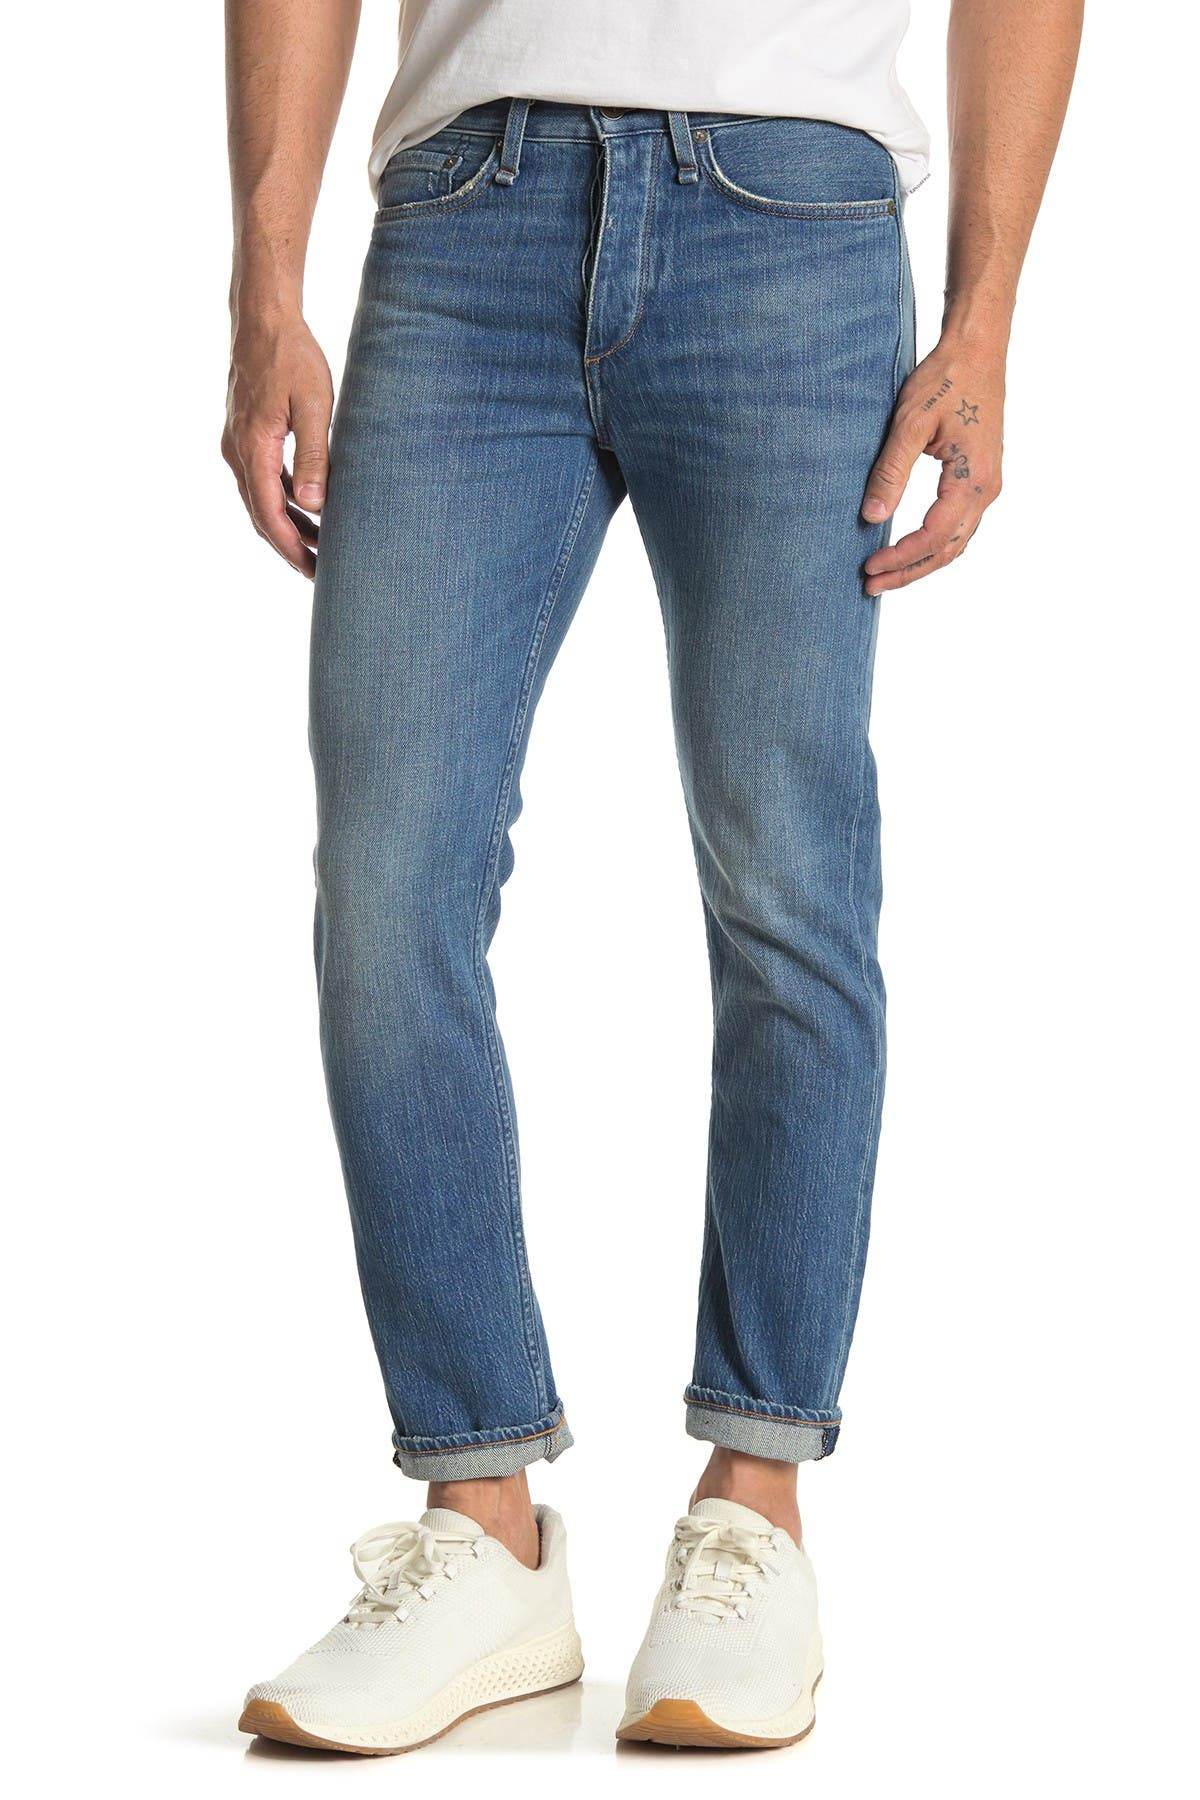 Image of Rag & Bone Slim Fit Jeans